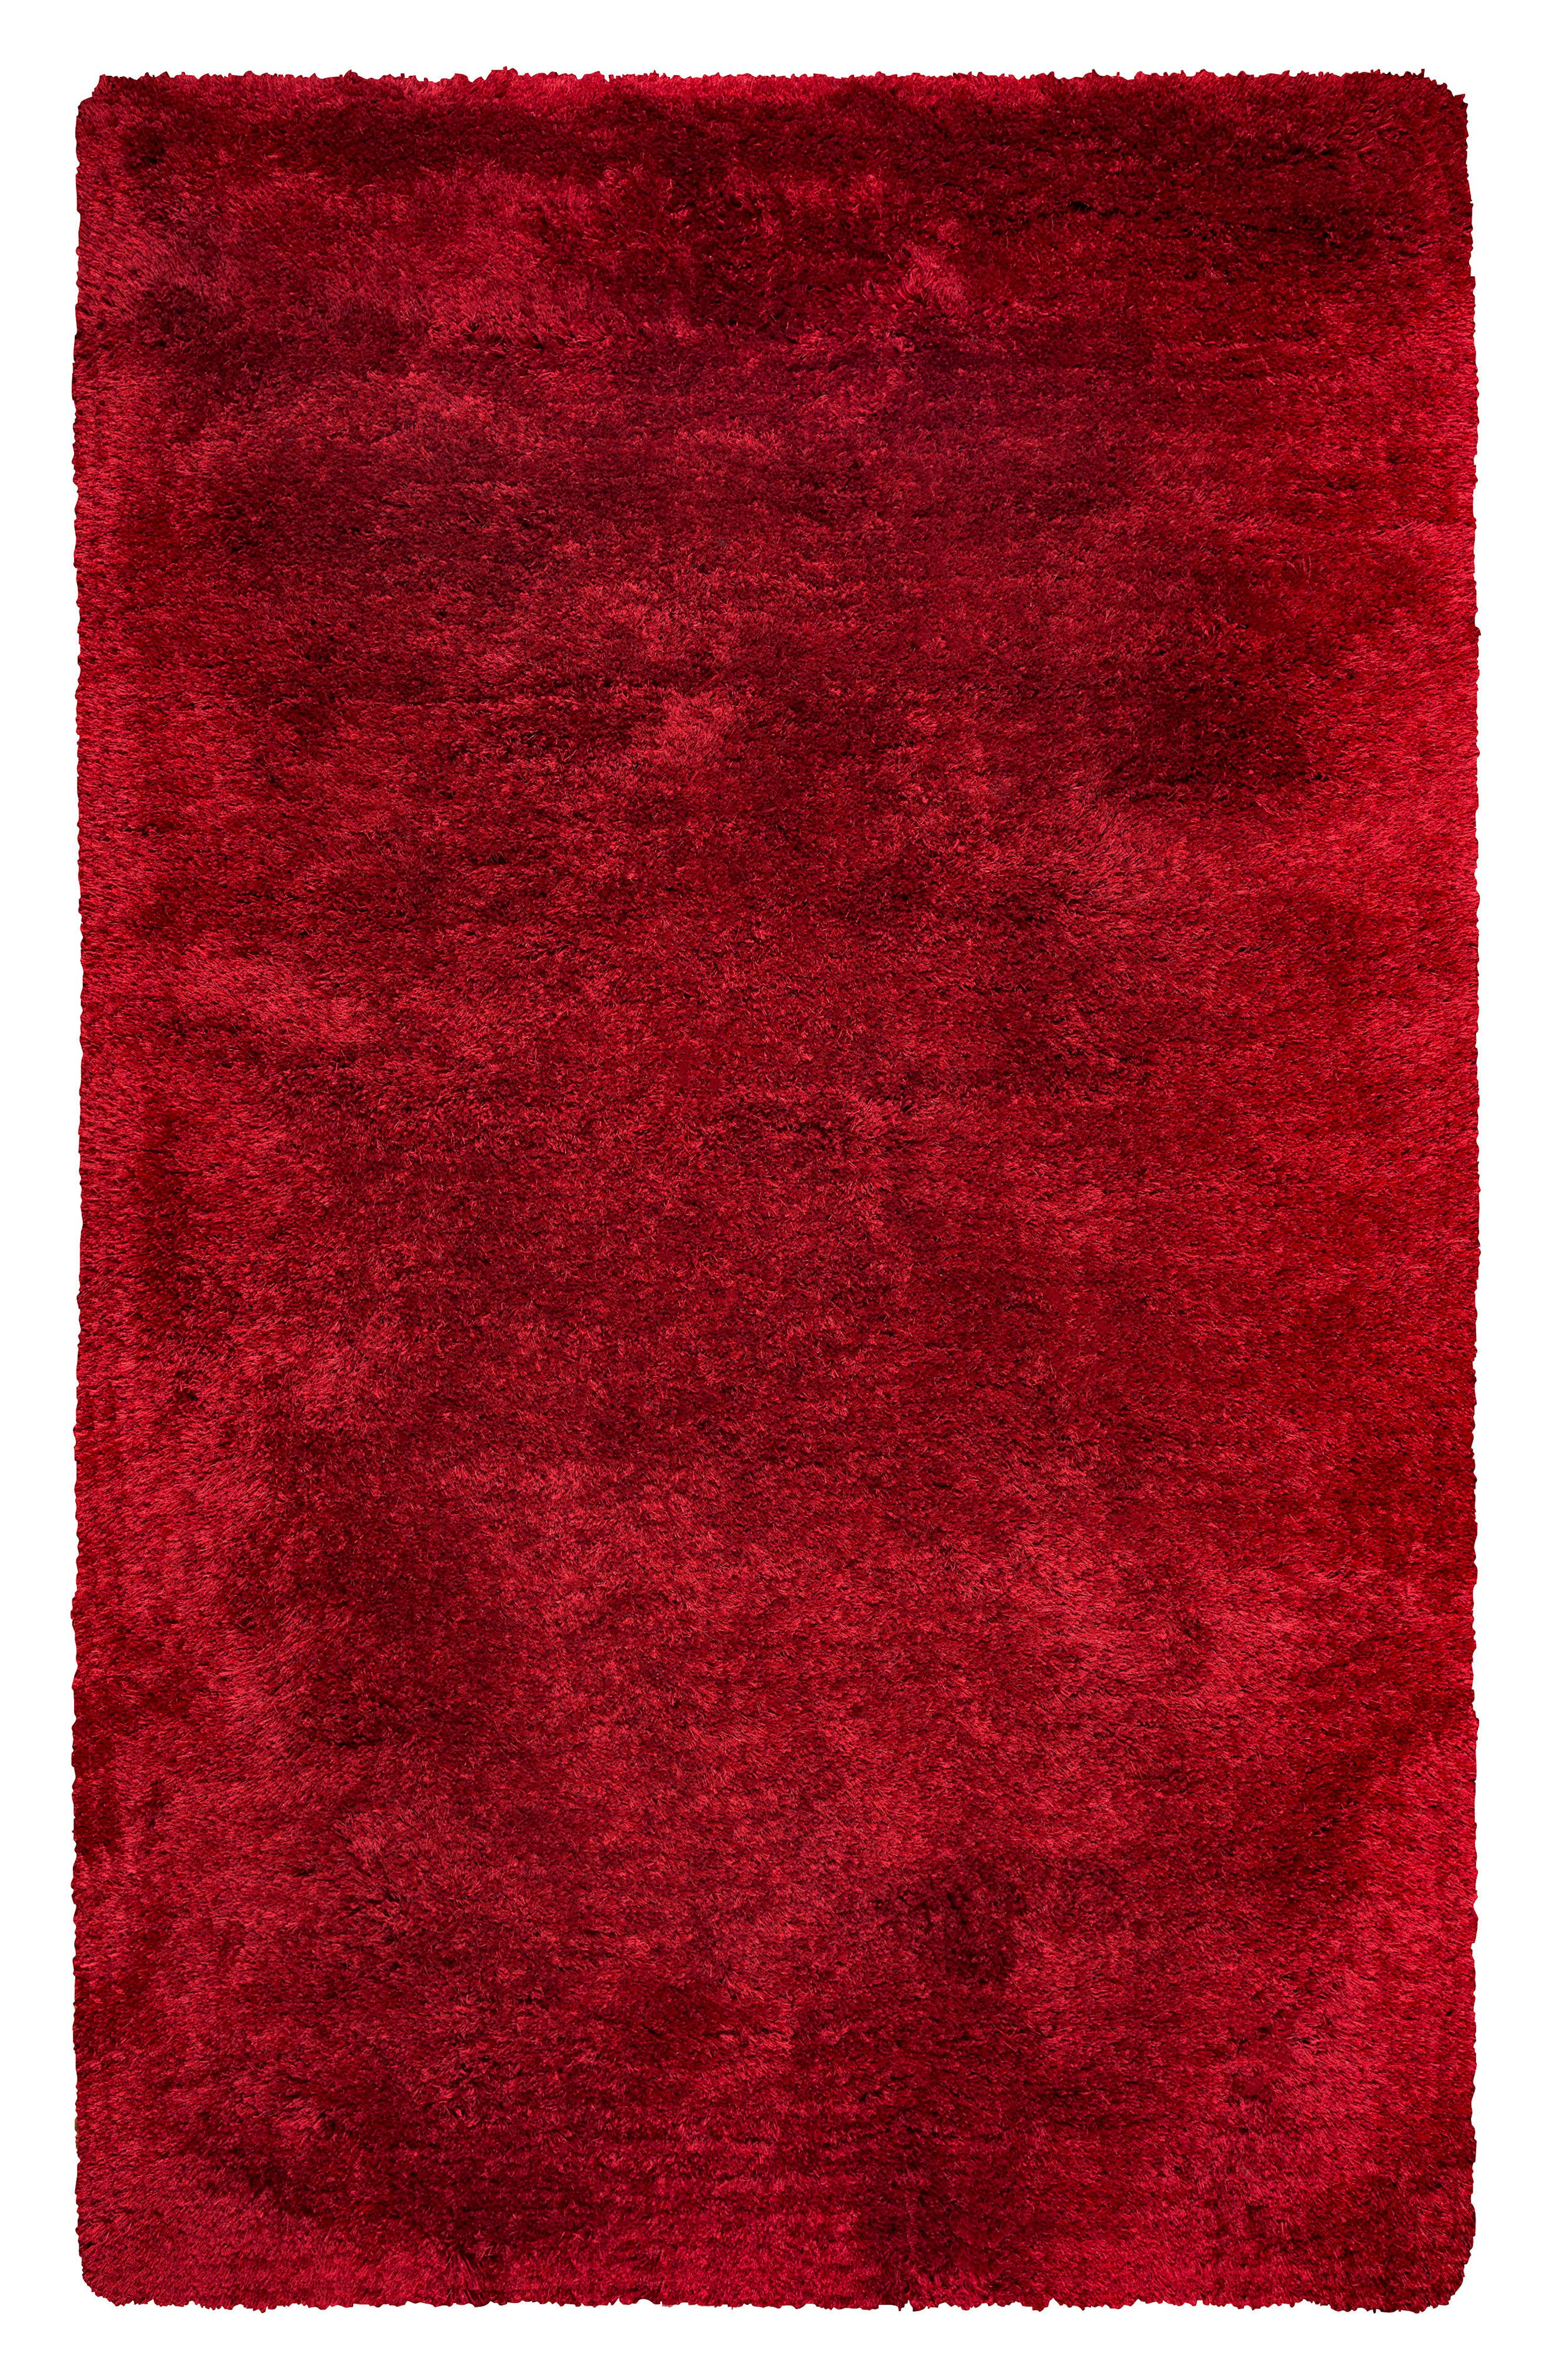 Plush Shag Hand Tufted Area Rug,                         Main,                         color, Red